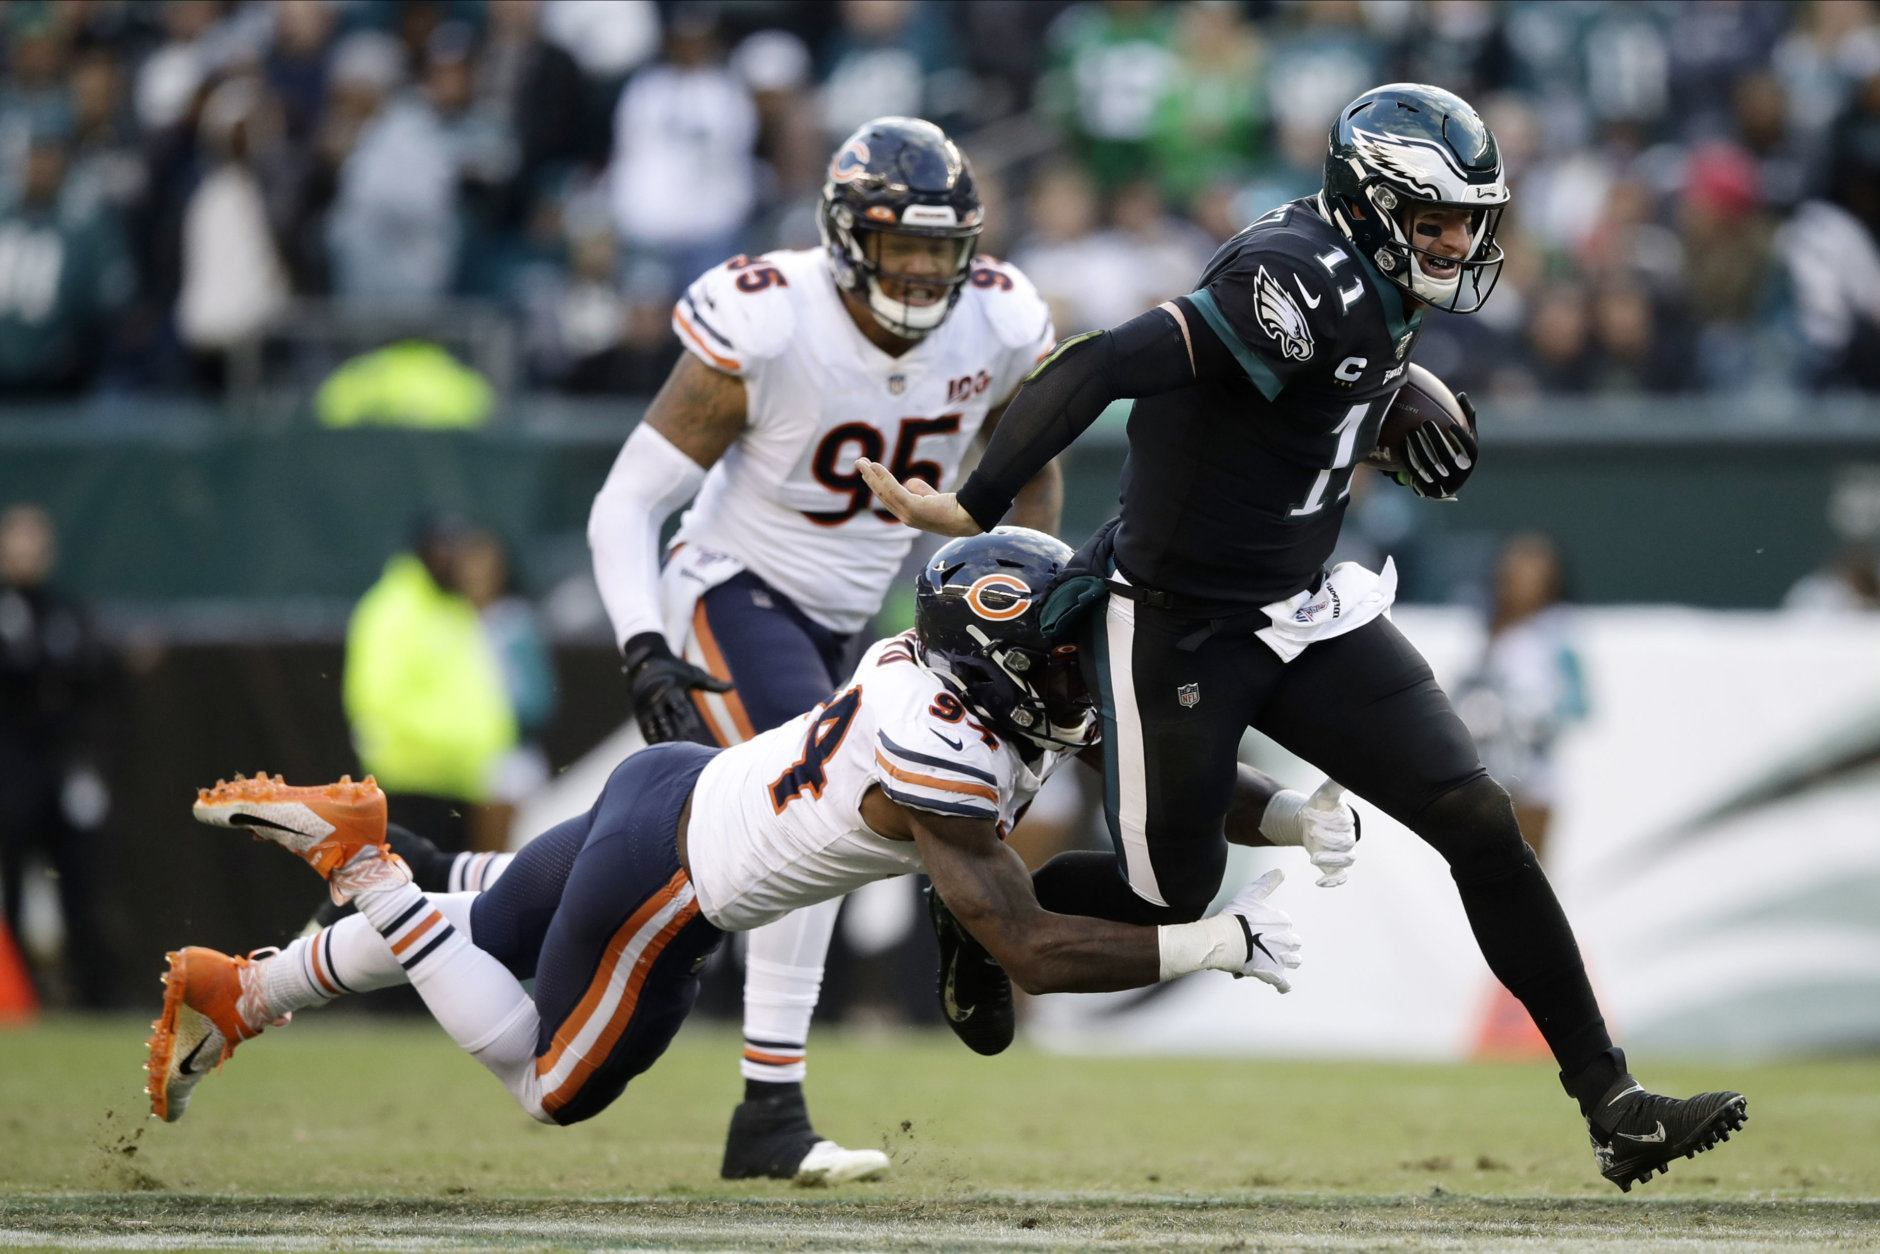 """<p><b><i>Bears 14</i></b><br /> <b><i>Eagles 22</i></b></p> <p>Chicago may have been <a href=""""https://profootballtalk.nbcsports.com/2019/10/31/matt-nagy-wants-bears-to-learn-from-nationals/"""" target=""""_blank"""" rel=""""noopener"""" data-saferedirecturl=""""https://www.google.com/url?q=https://profootballtalk.nbcsports.com/2019/10/31/matt-nagy-wants-bears-to-learn-from-nationals/&amp;source=gmail&amp;ust=1572912255566000&amp;usg=AFQjCNFm8r1dVokmBpH-ZwsVA5JMYNjBzg"""">inspired by the Nationals</a> — and had a Nats-like rebound from <a href=""""https://twitter.com/ESPNStatsInfo/status/1191076939794137090?s=20"""" target=""""_blank"""" rel=""""noopener"""" data-saferedirecturl=""""https://www.google.com/url?q=https://twitter.com/ESPNStatsInfo/status/1191076939794137090?s%3D20&amp;source=gmail&amp;ust=1572912255566000&amp;usg=AFQjCNFtloyV1EYEw4VoLuqsvdY_9ZJx0g"""">a historically inept first half</a> to make it a game again — but they forgot the key ingredient: Finish the fight!</p>"""